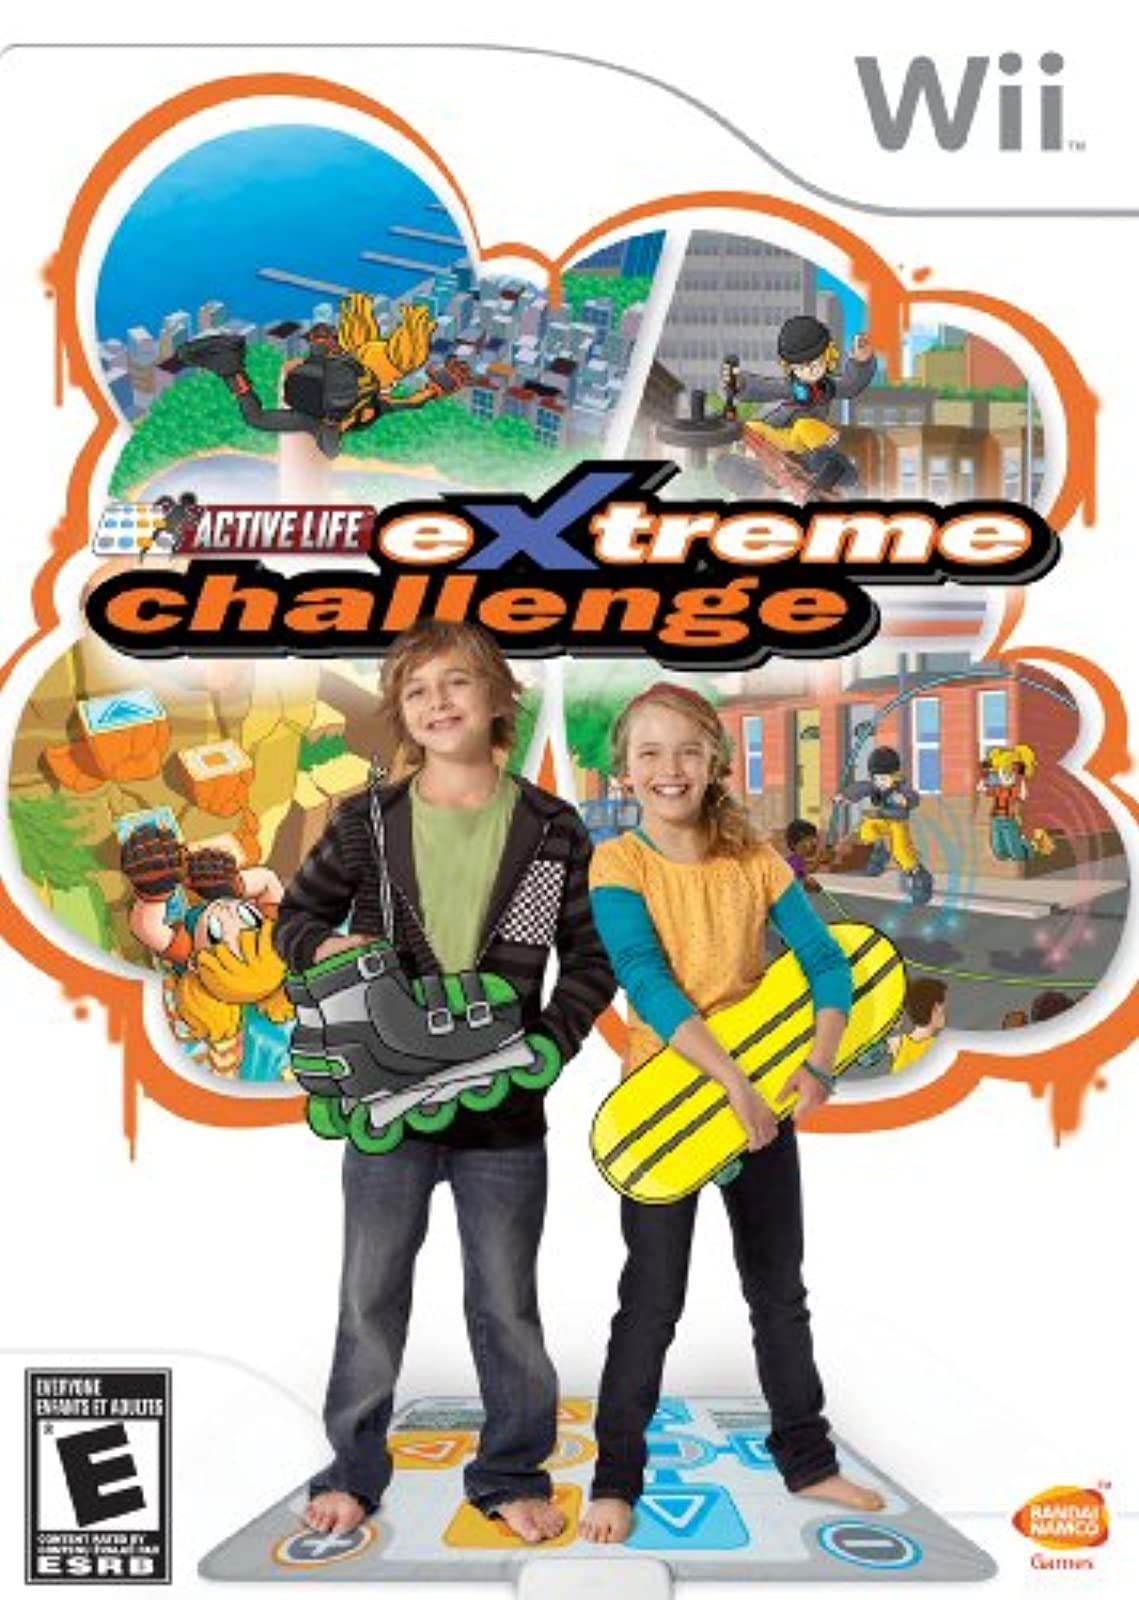 Active Life: Extreme Challenge For Wii And Wii U